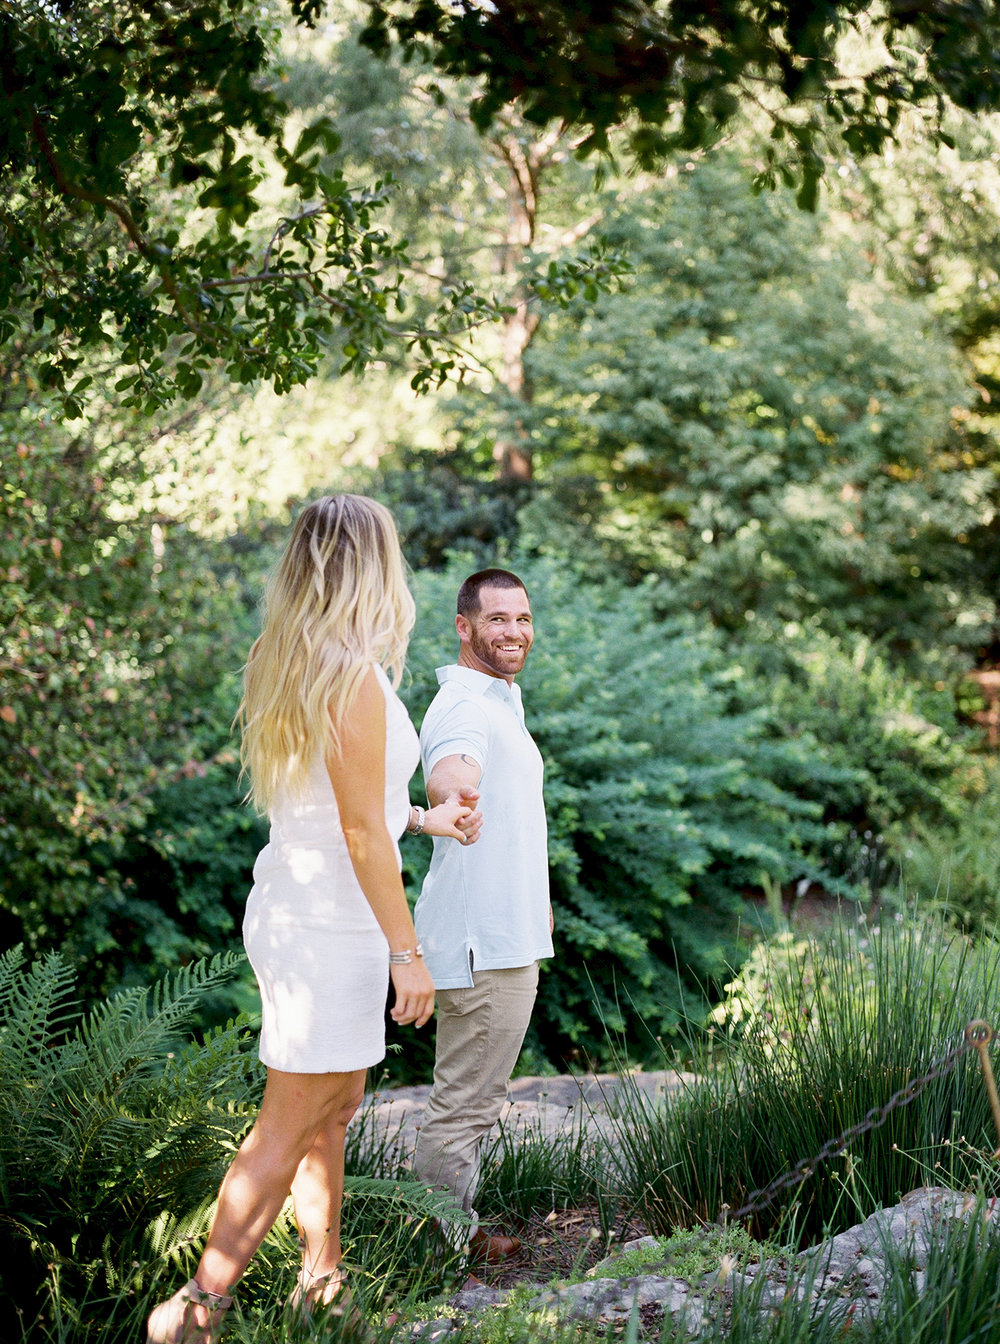 DFW Wedding Plannning | Allday Events | Dallas Arboretum Engagement Session | 00047.jpg